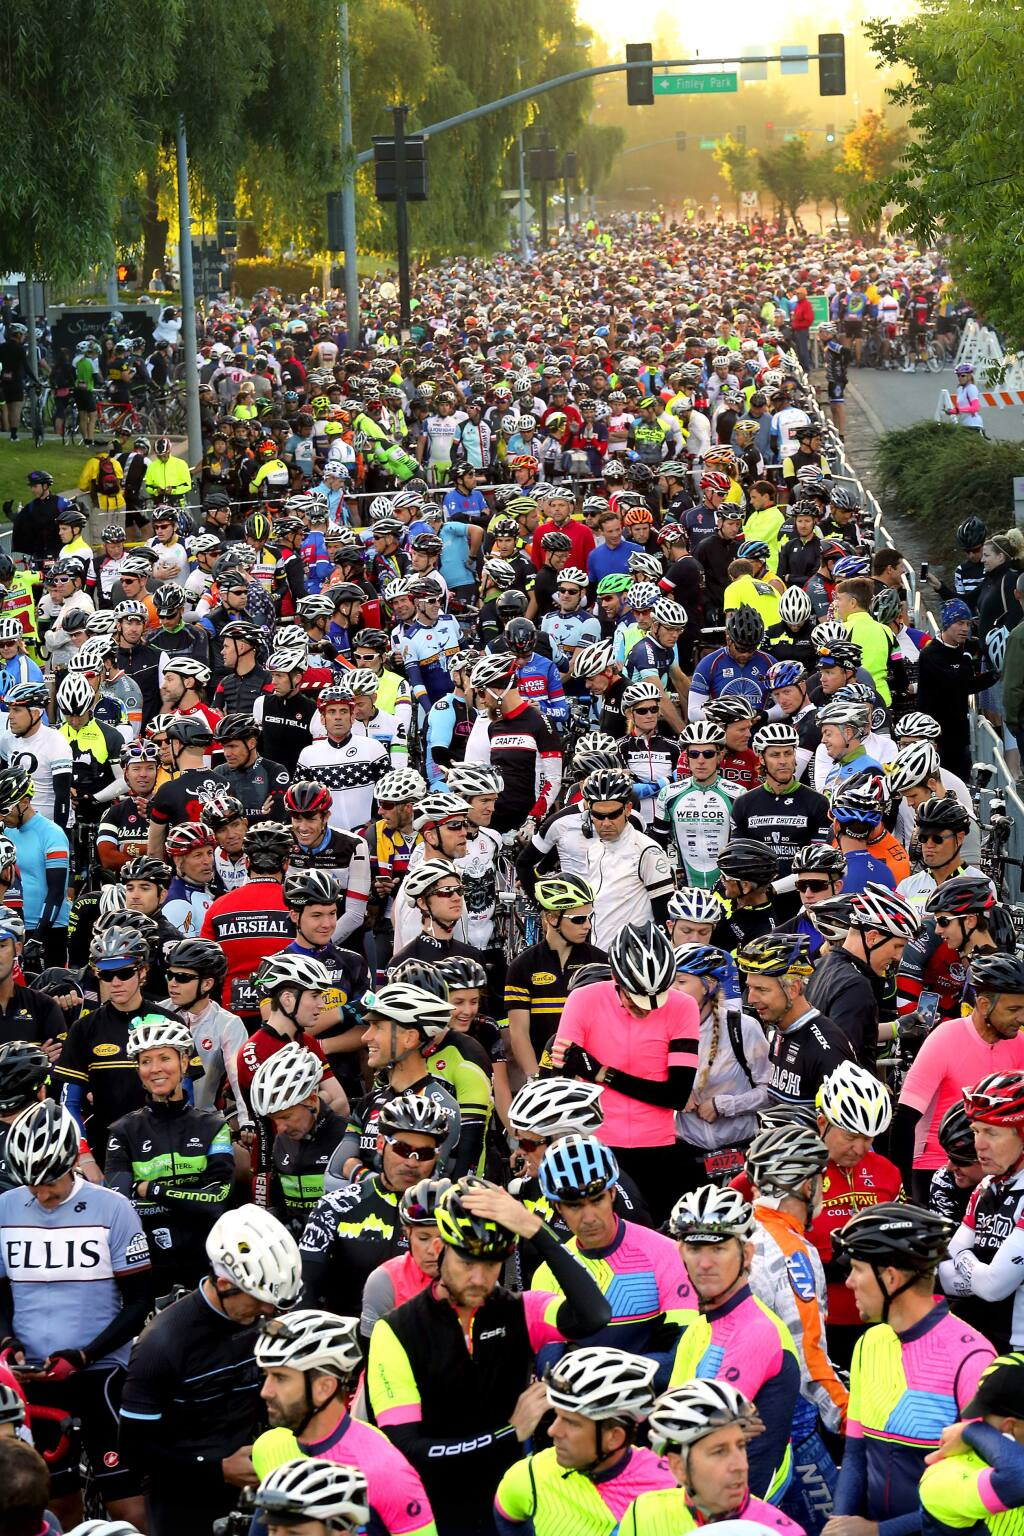 Over 6,000 riders participated in the 2015 Levi's GranFondo through west Sonoma County. (JOHN BURGESS / The Press Democrat)